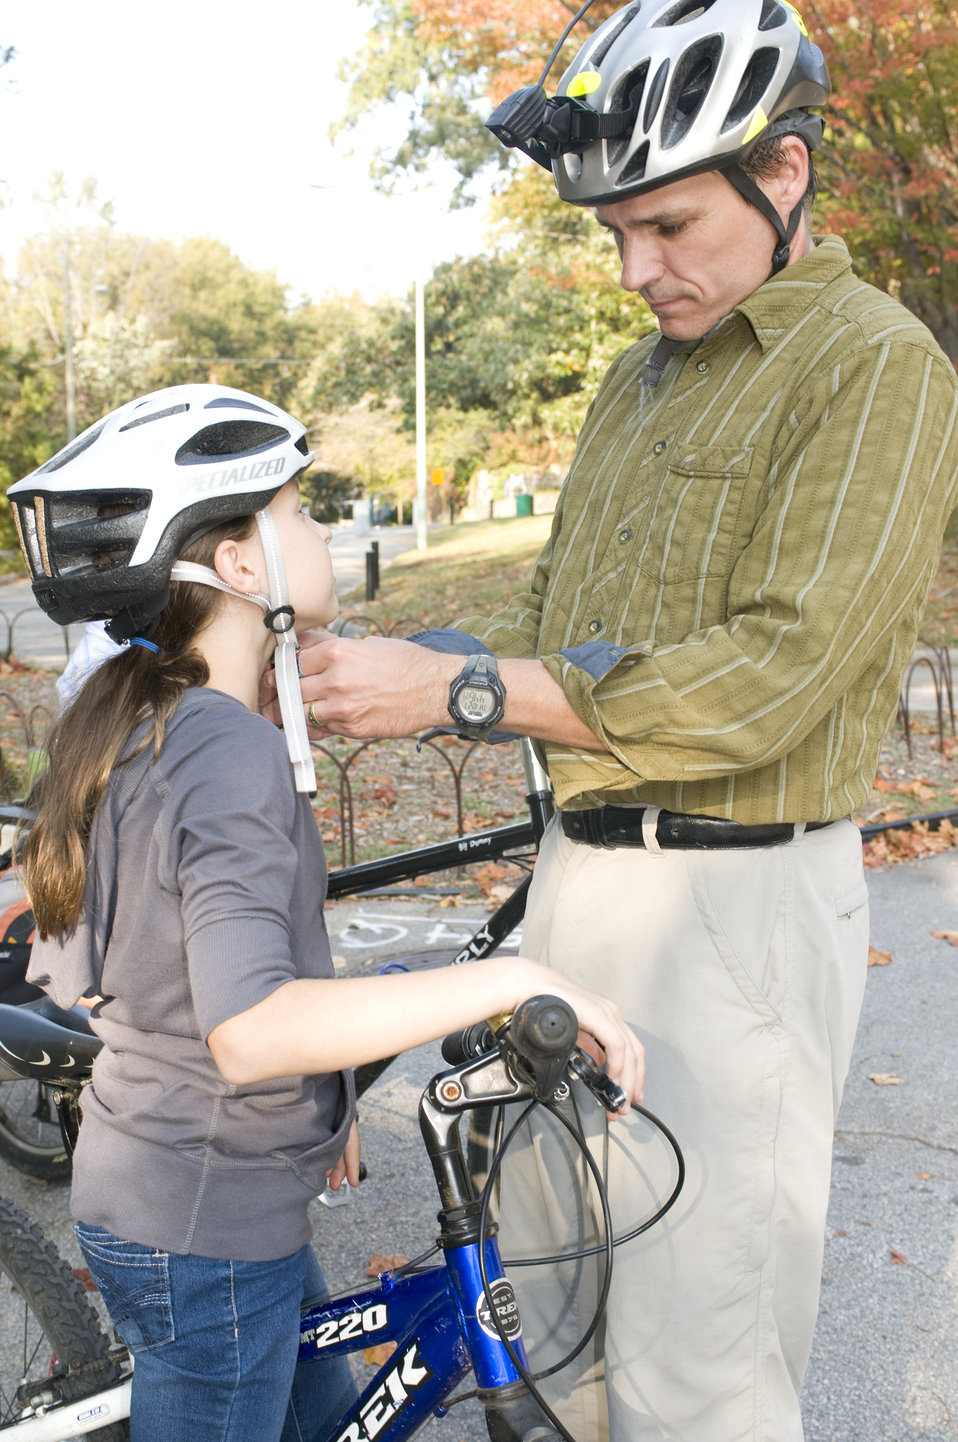 This photograph depicts a father and daughter about to embark on a beautiful Georgian afternoon bicycle ride. At this point in their prepara